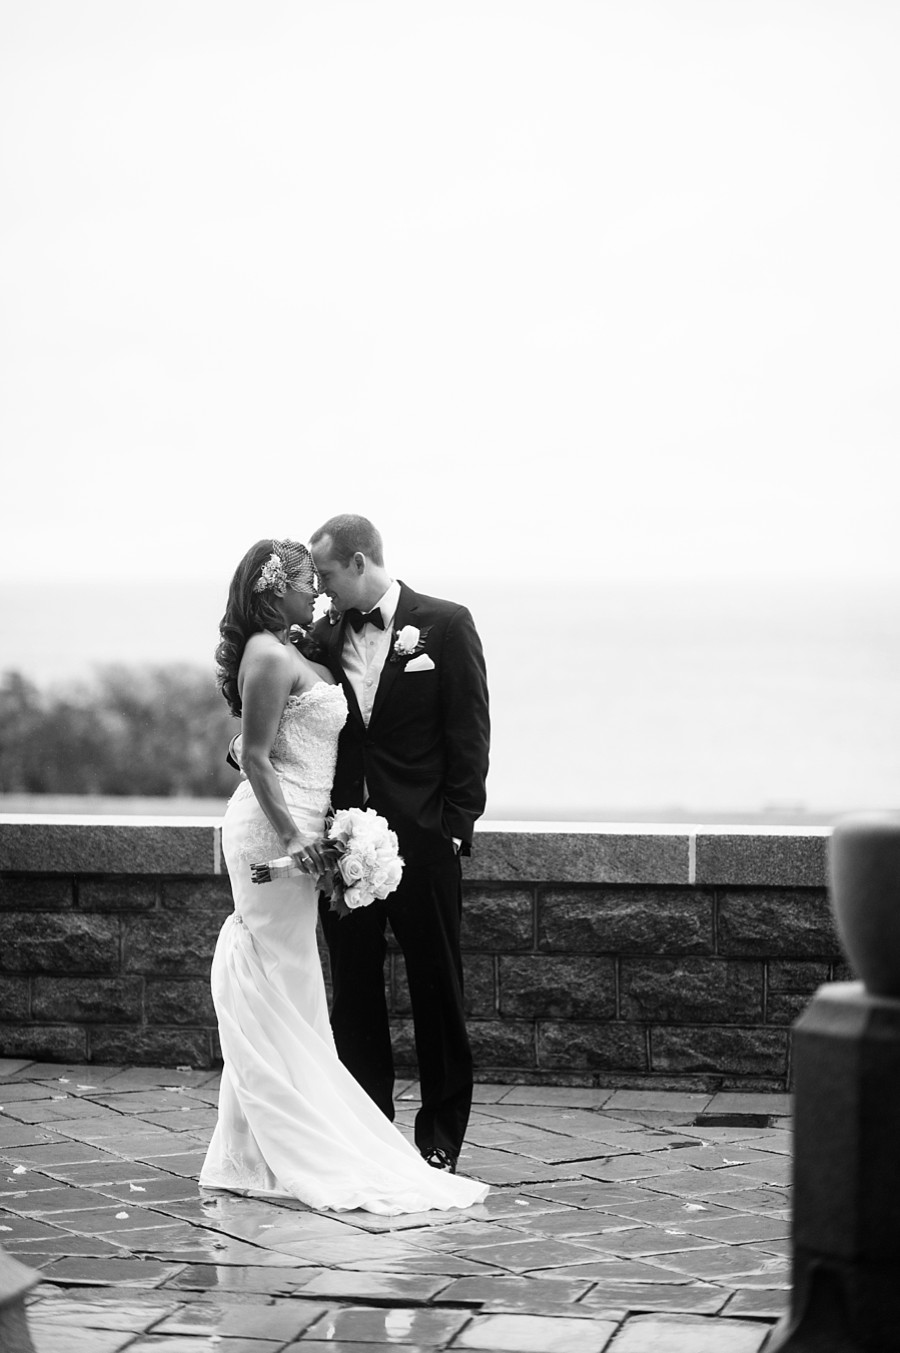 Branford_House_Wedding_FE_24.jpg